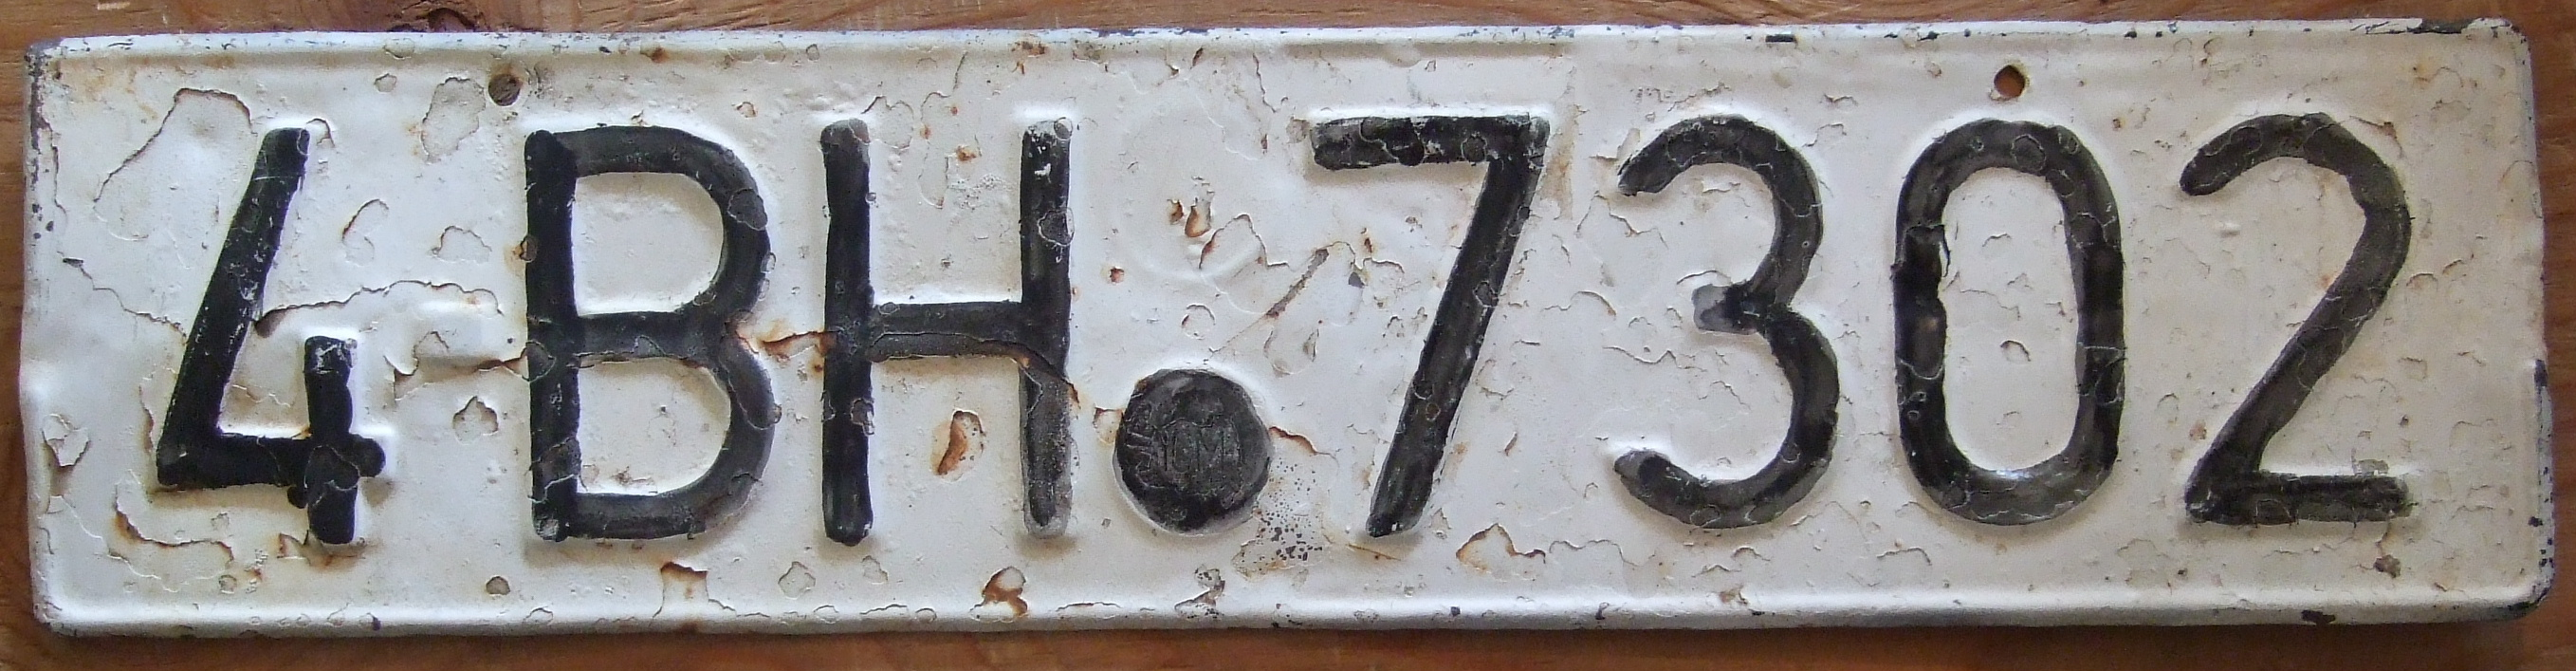 File:Old Romanian license plate.jpg - Wikimedia Commons